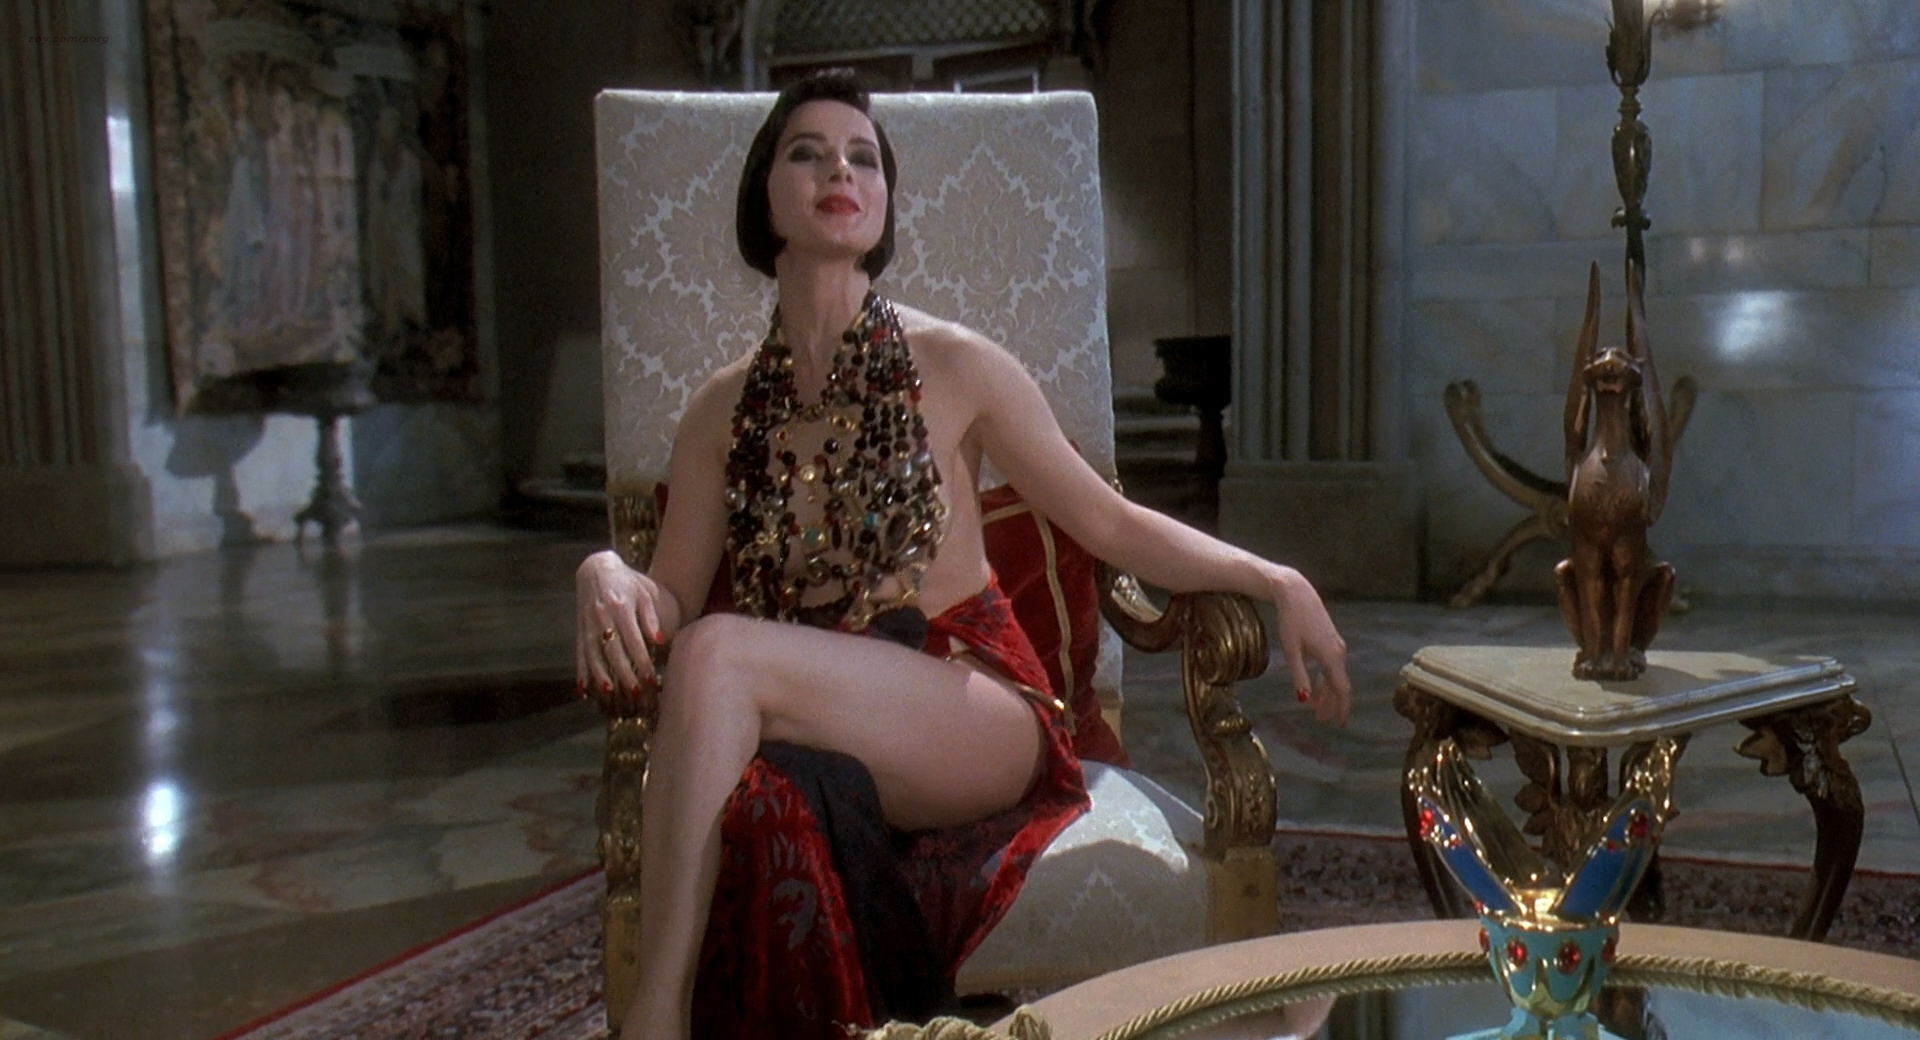 Isabella Rossellini nude side boob Catherine Bell nude butt and others -  Death Becomes Her (